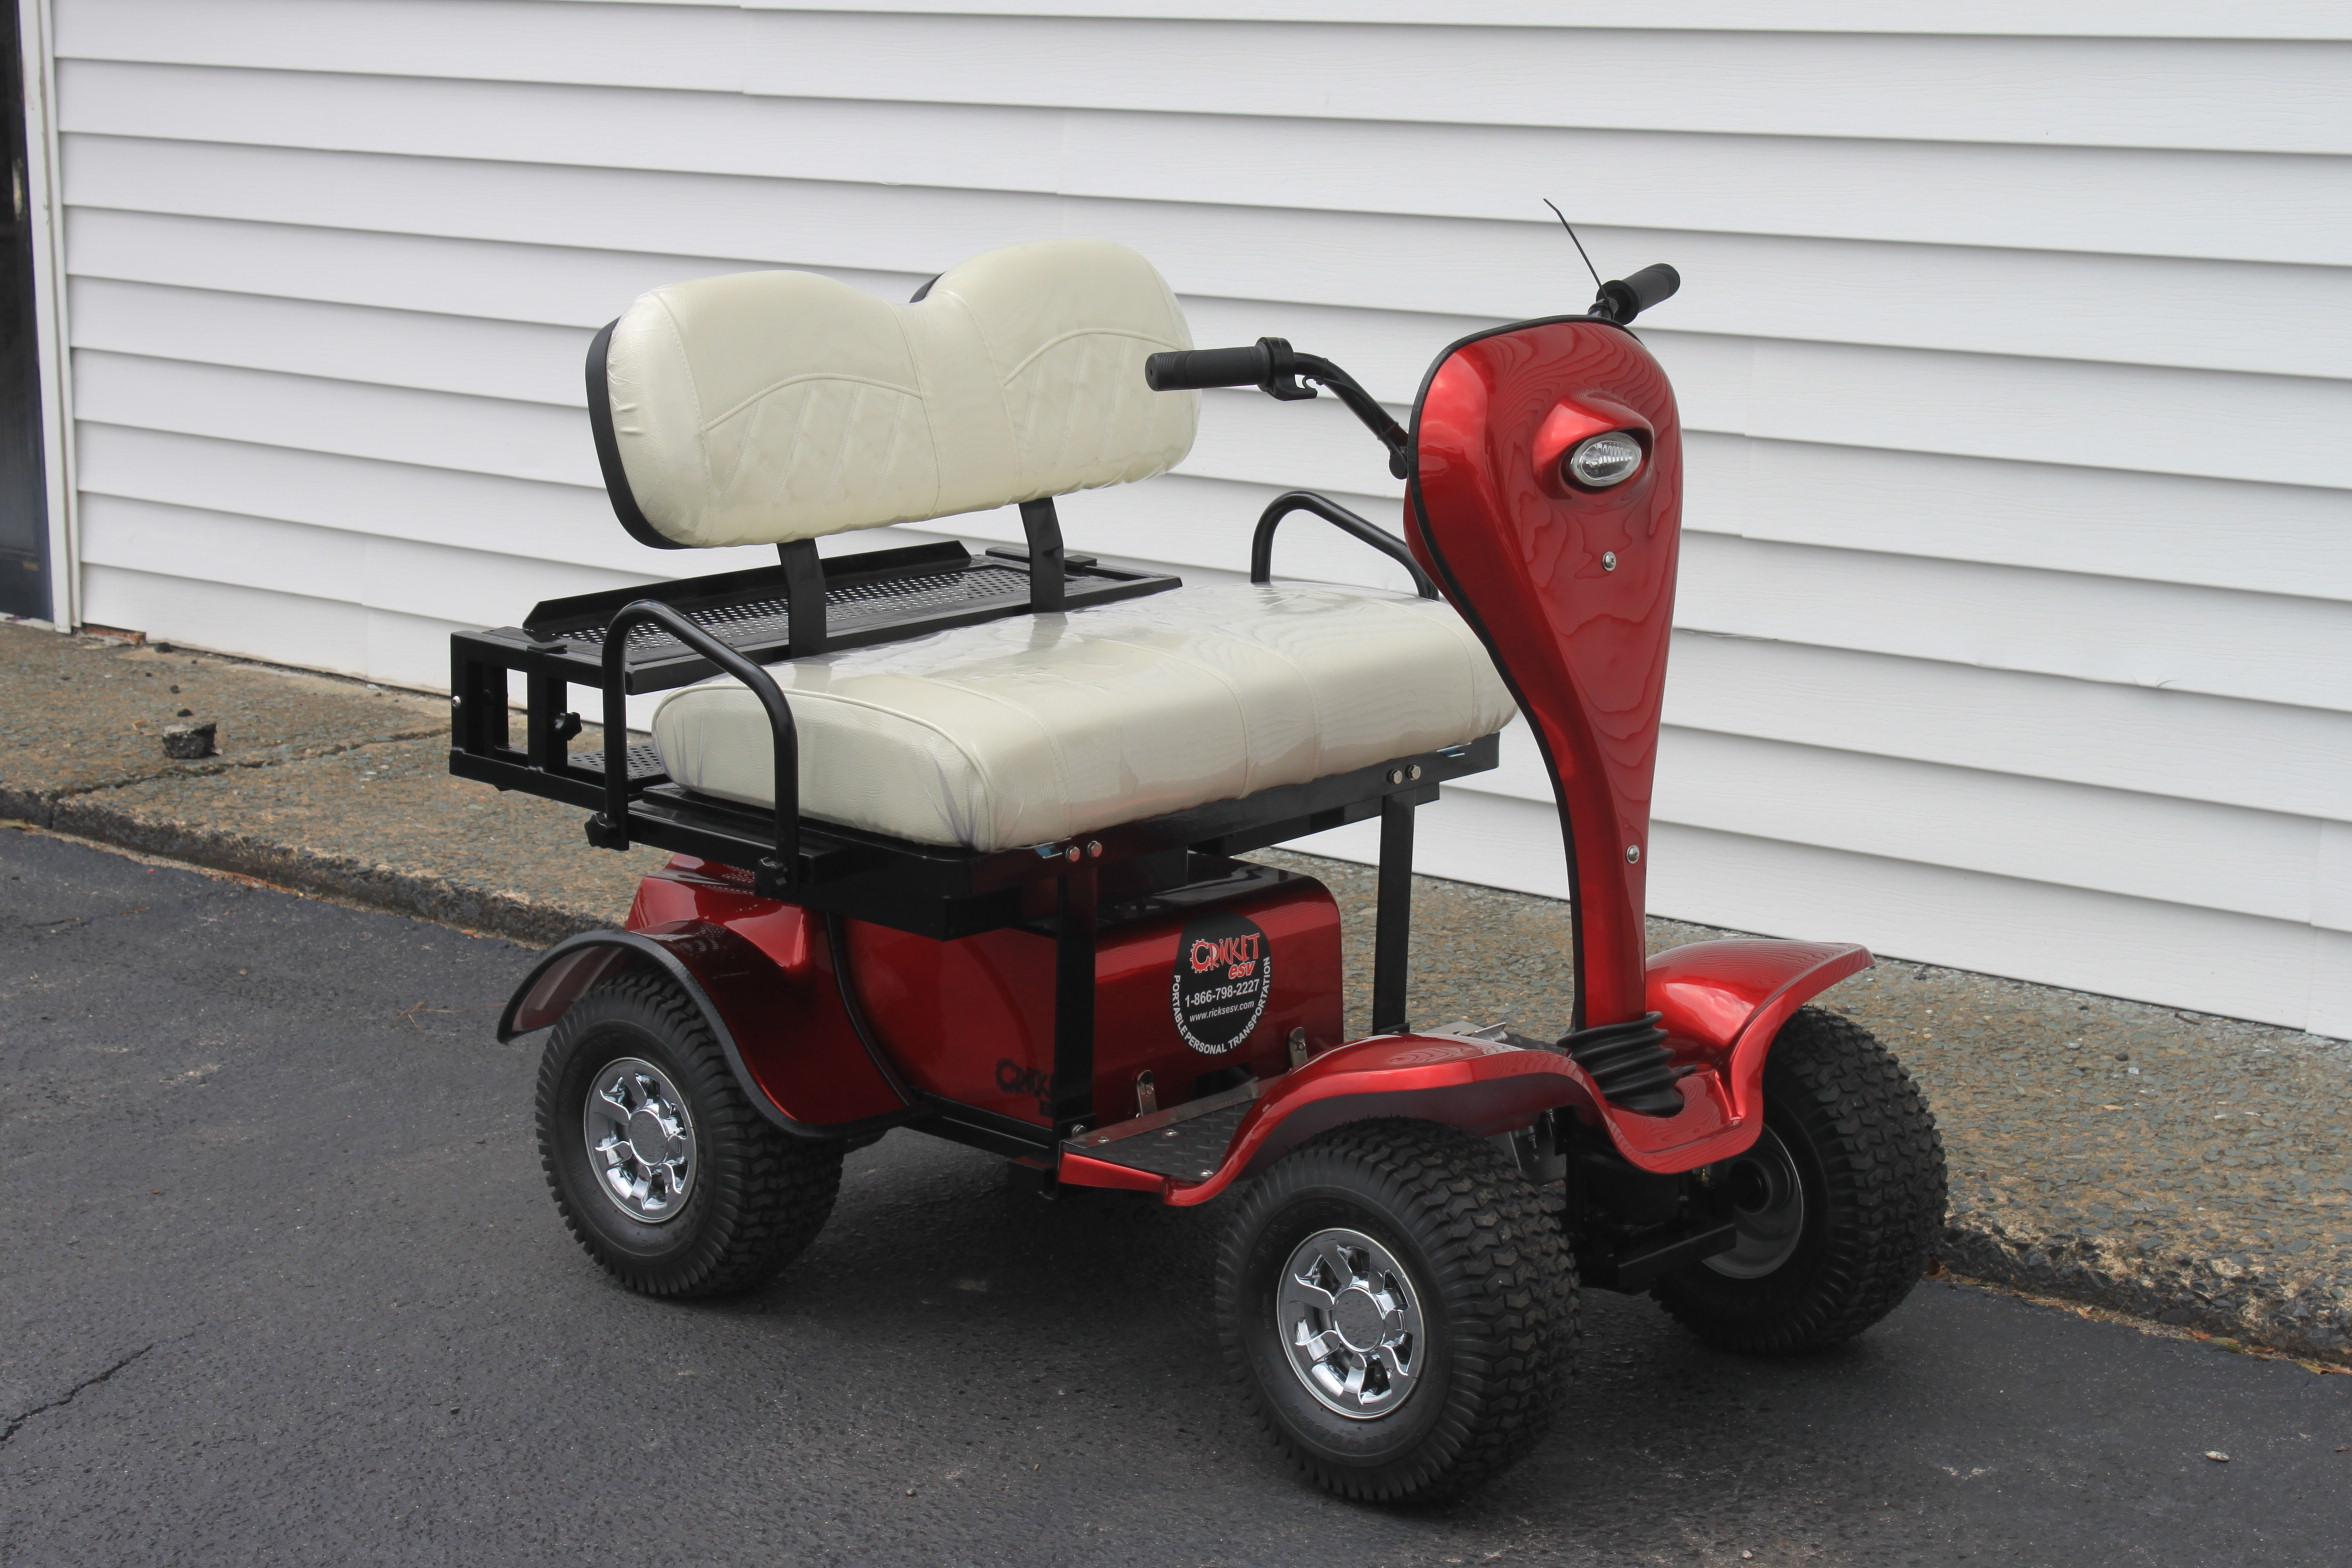 STOCK# CR-ESV-WHT, 2019 CRICKET ESV MINI 24 VT GOLF CART